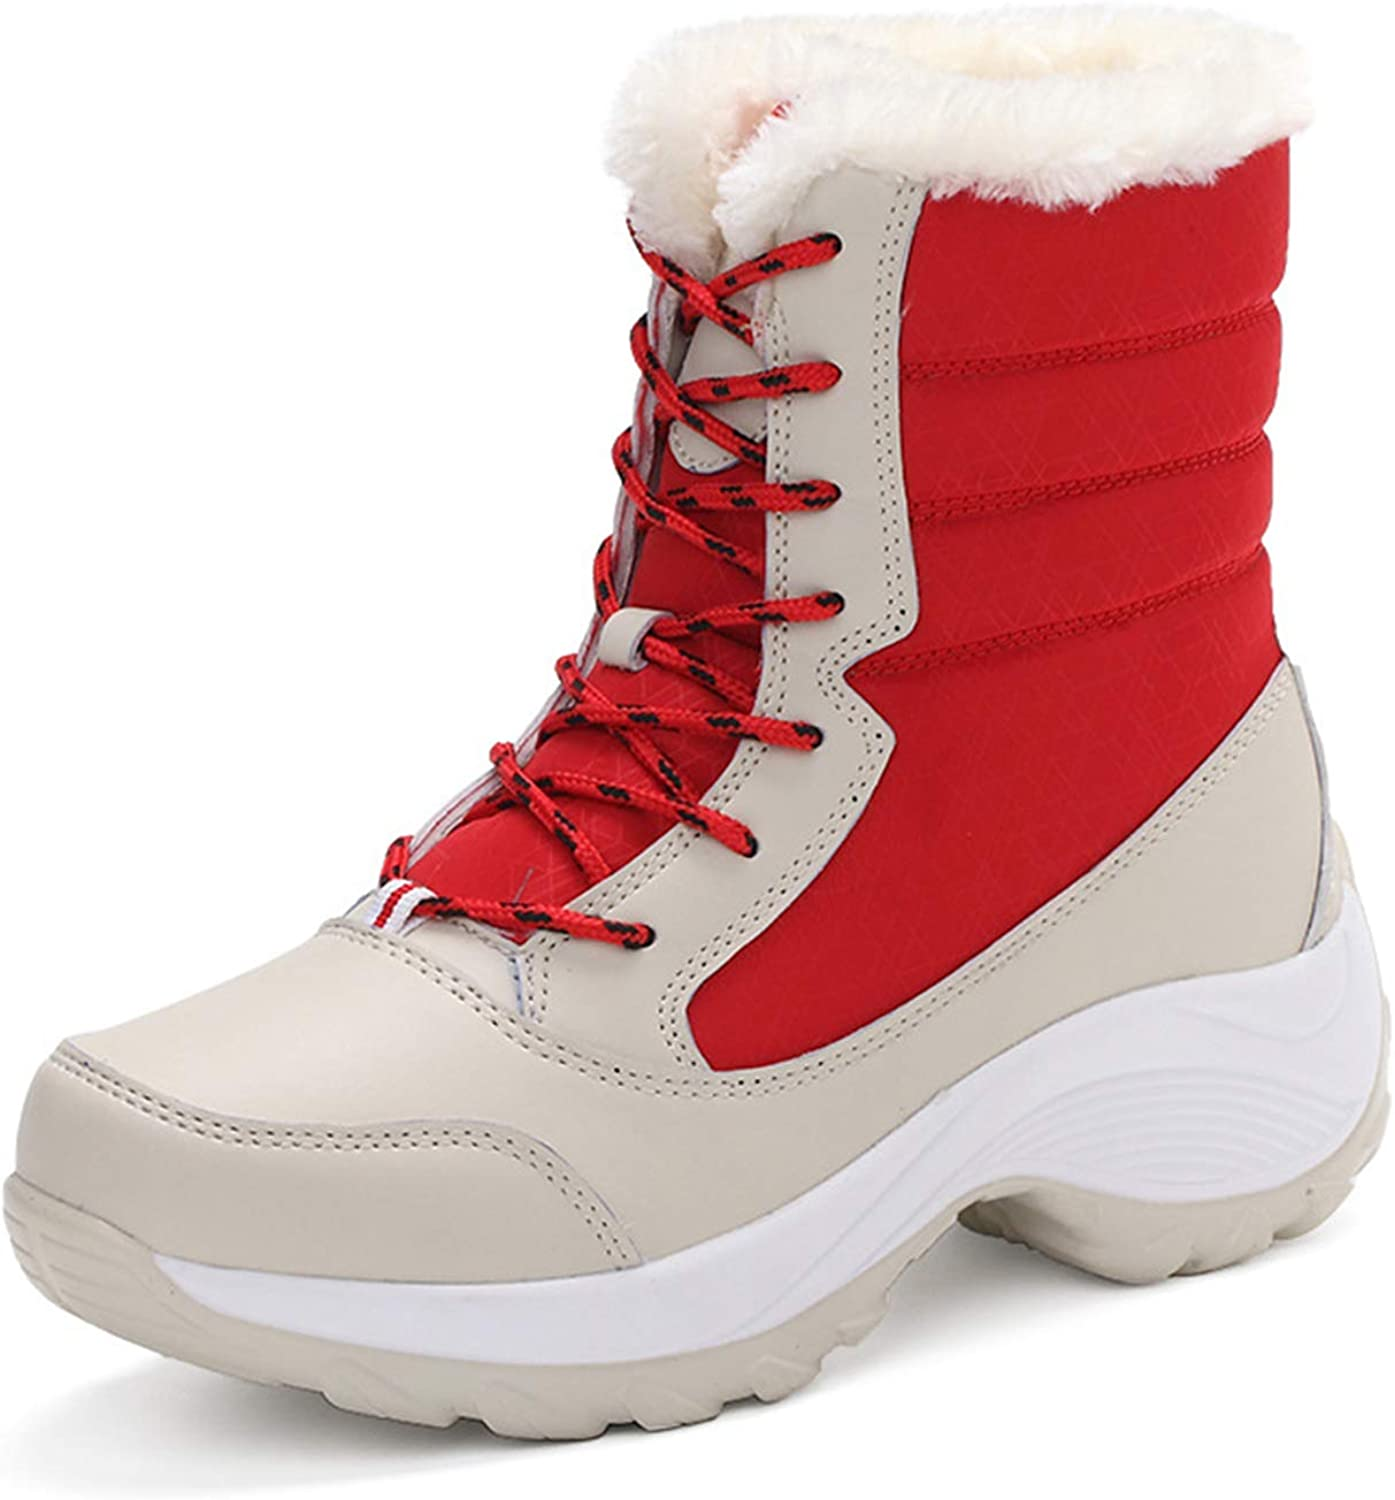 Winter Thicken Warm Snow Boots for Women,Simple Pure color Short Block Thick Anti-Slip Sole shoes for Ladies Girls Outdoor Activities Wear